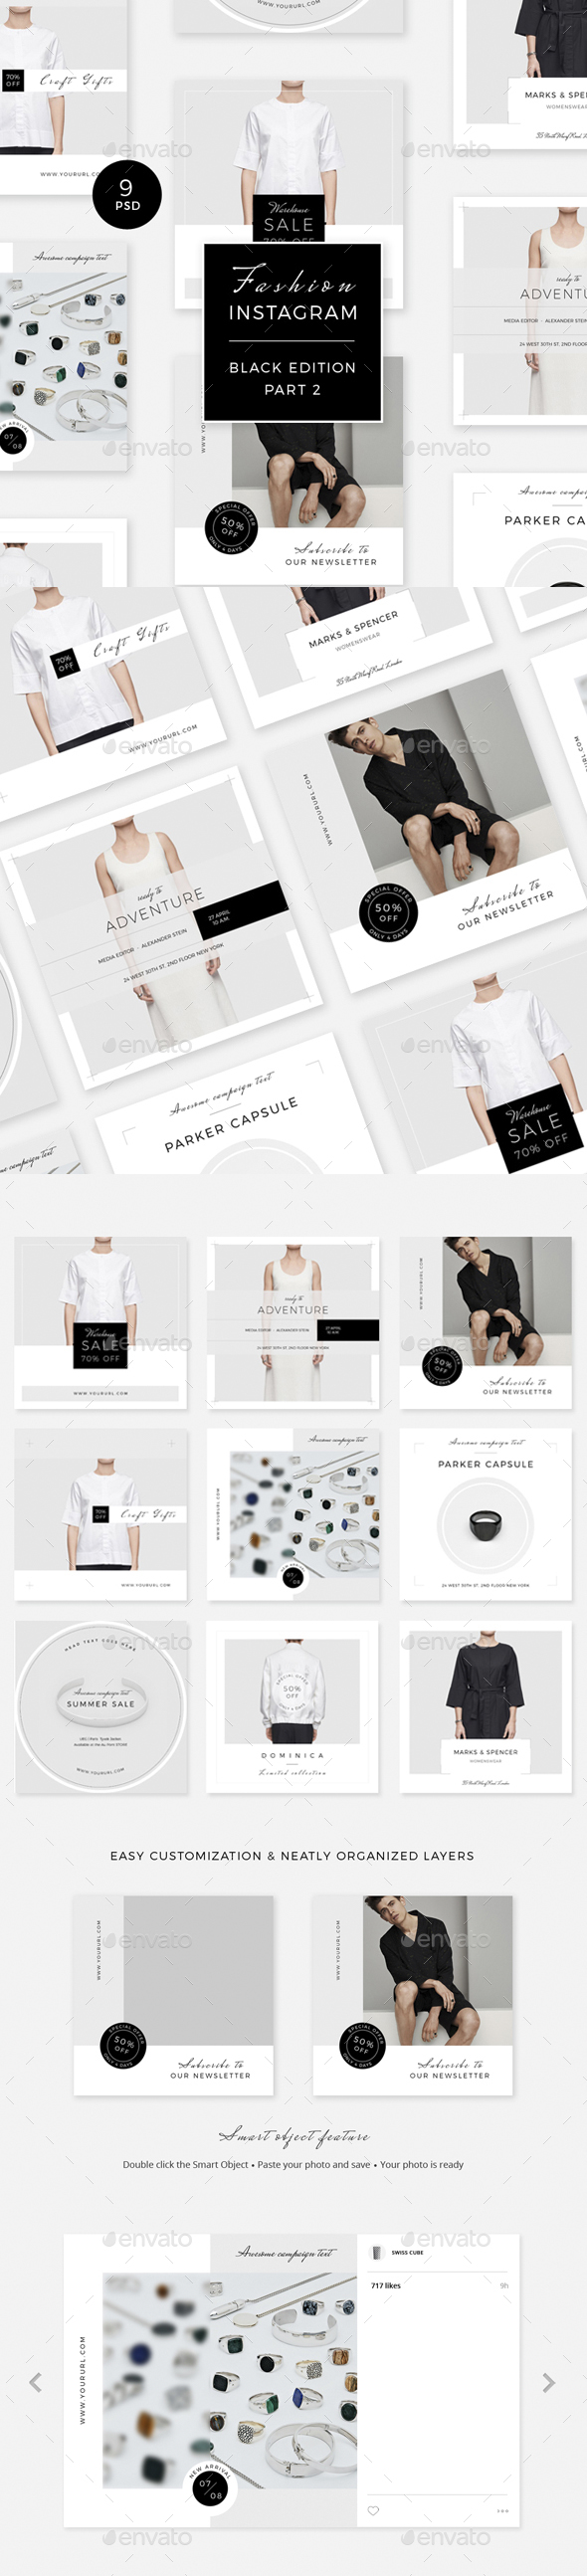 Fashion Instagram - Black Edition - Part 2 - Social Media Web Elements